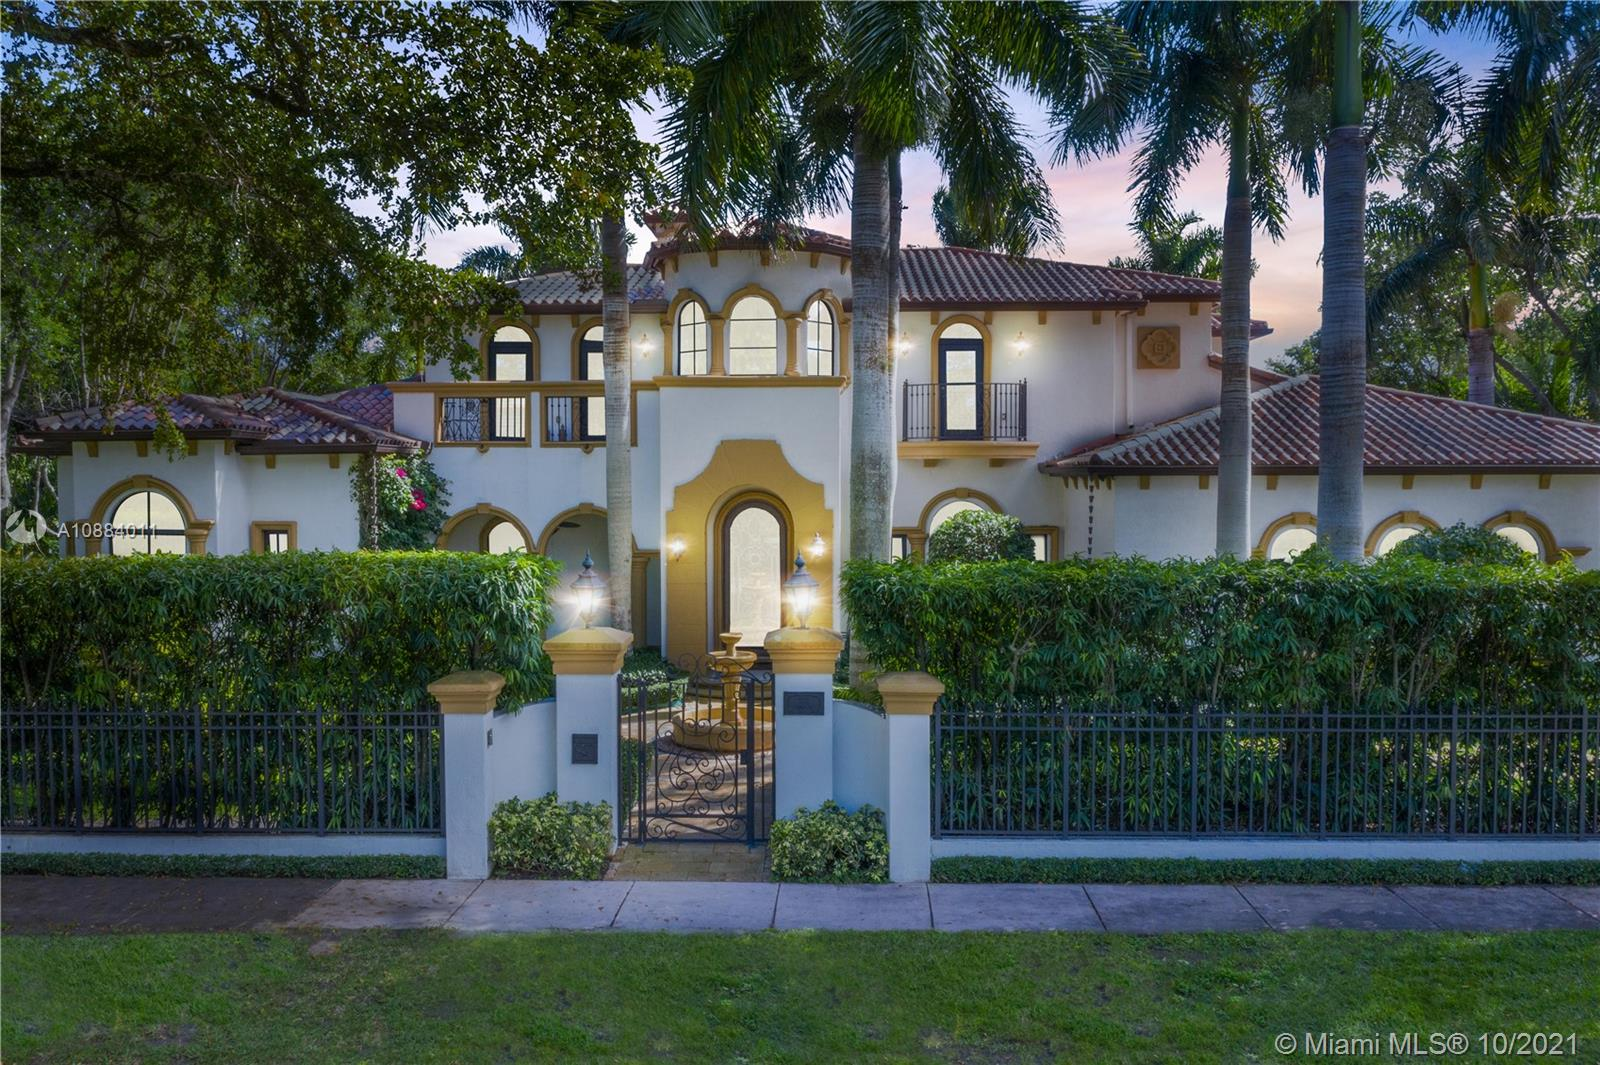 This exquisite residence is tastefully built and set on over half an acre in the heart of Coral Gables. A secluded sanctuary offering a combination of hand crafted natural stones and woodwork including walnut and unique cedar finishes. This beautifully designed, two story home features high ceilings, entertainment area with bar & 400 plus bottle wine cellar, architectural landscape, impact windows and an amazing exposure of VIRTALES art windows on the inside, marble floors, 3 car garage, and a large gourmet kitchen. The driveway and decks are all made from an unique natural stone from Colombia. This home is truly one of a kind and provides those looking for an exclusive residence a retreat from it all while still conveniently located only one mile from Coral Gable's Famous Miracle Mile!